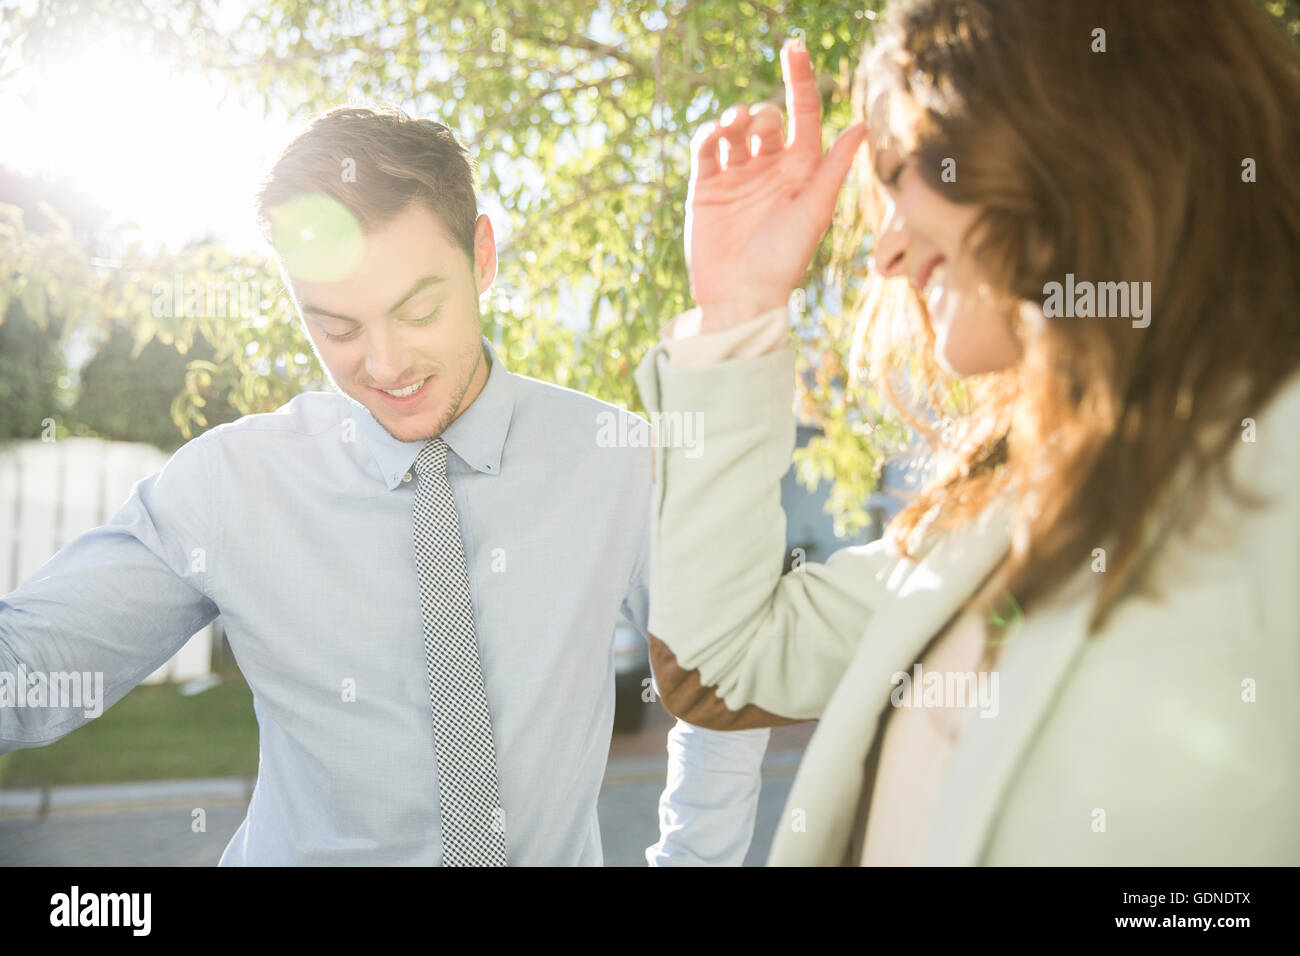 How to Date a ManWoman Who Embarrasses You images